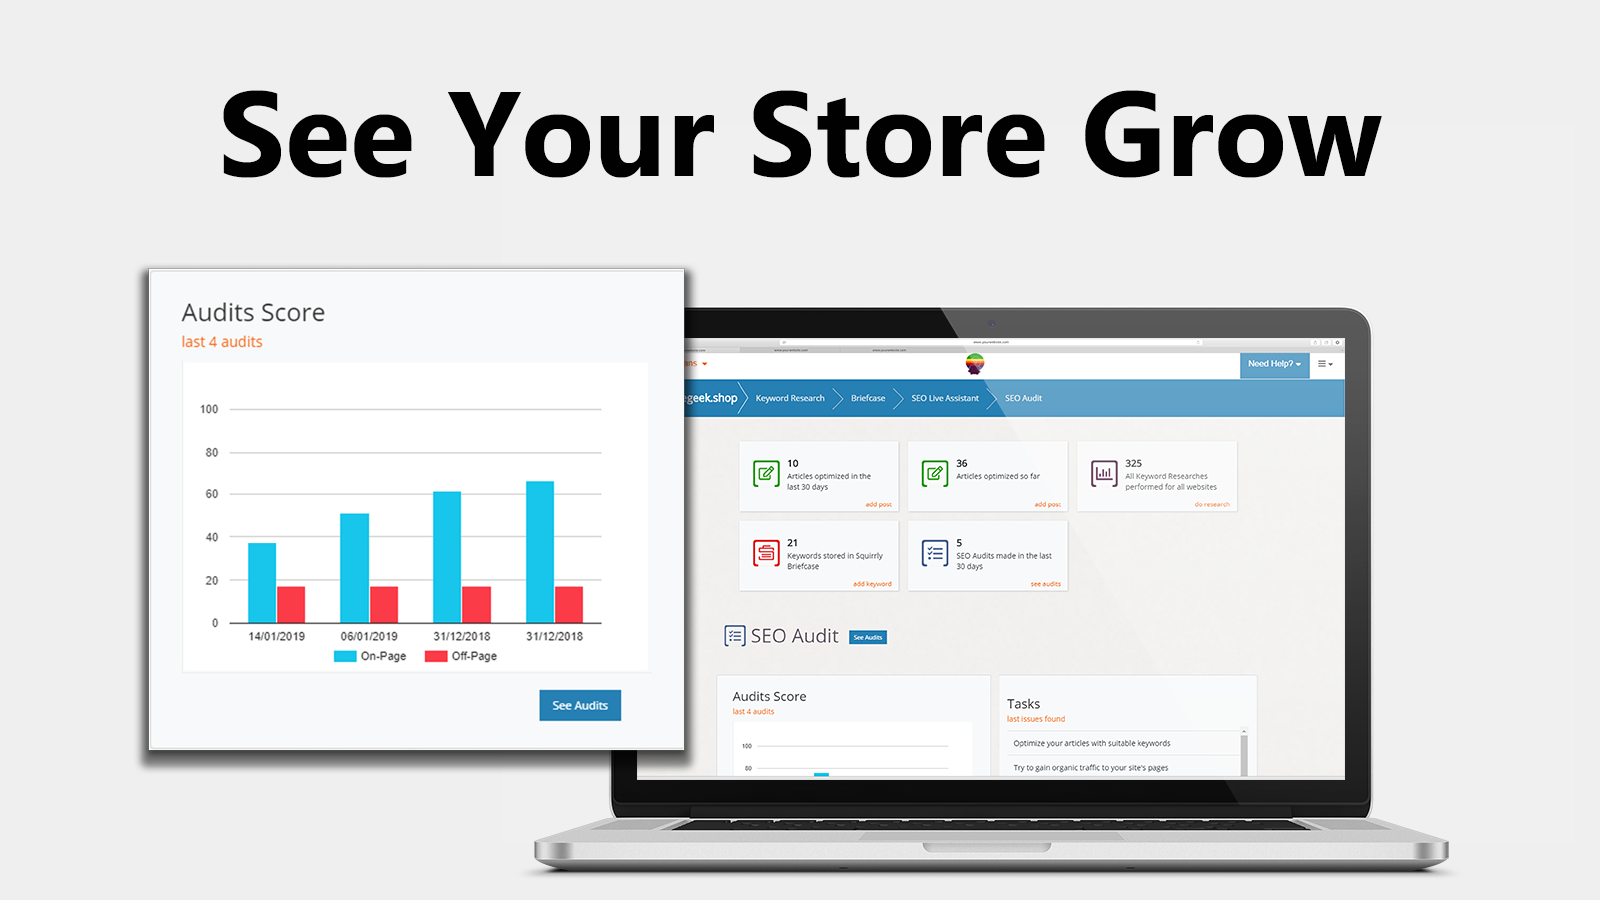 See your store grow with Plug in SEO audits and SEO stats